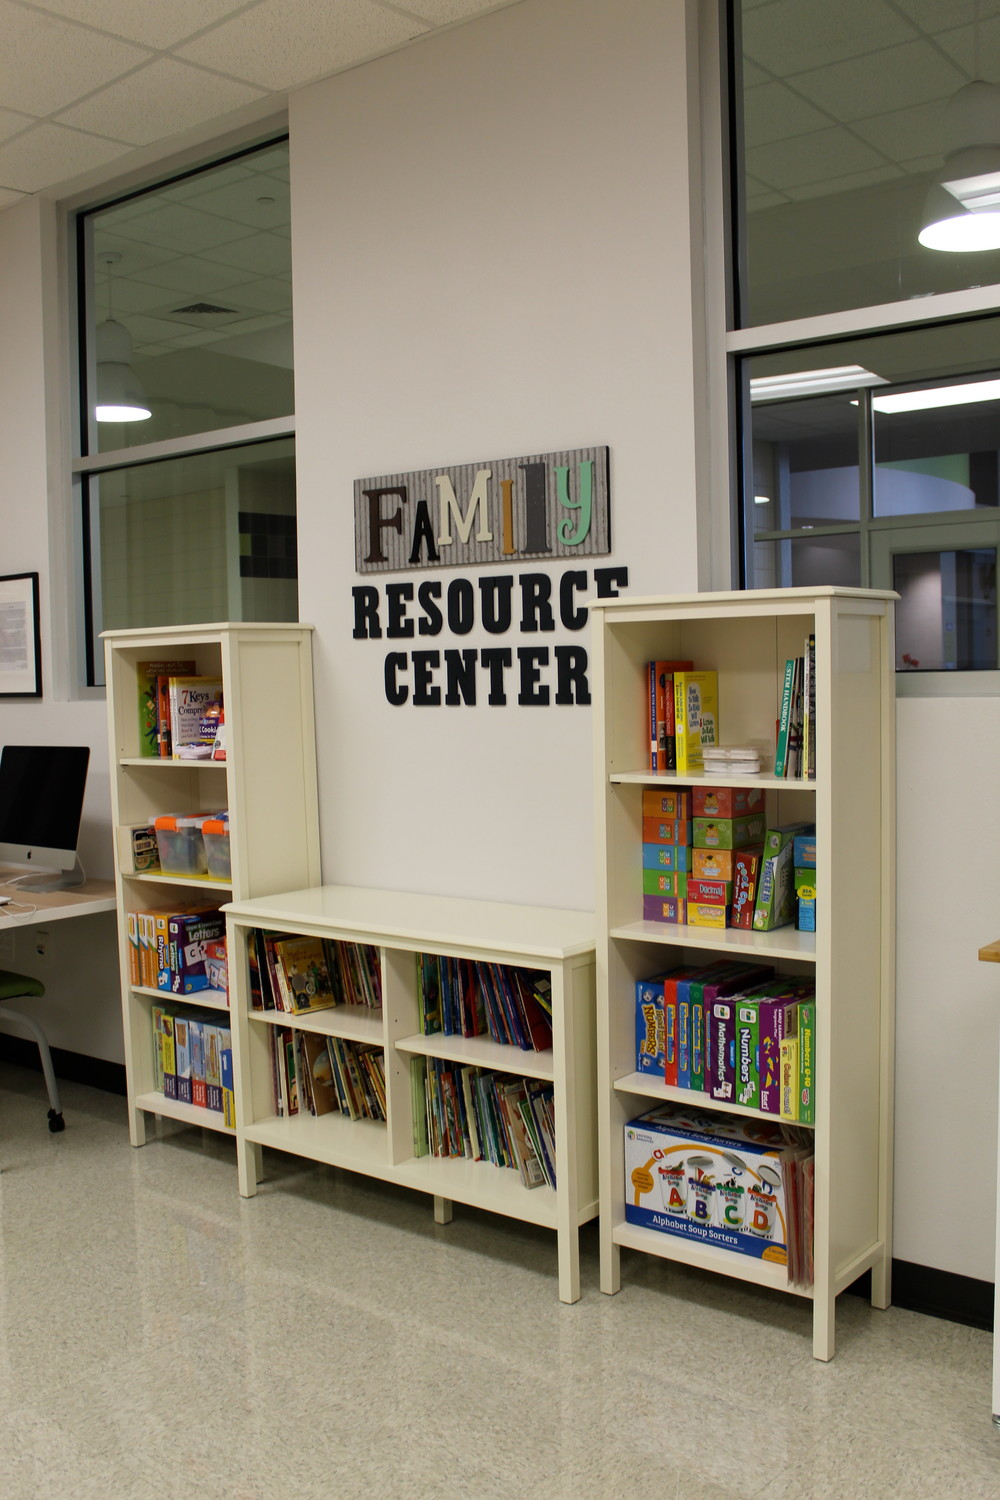 A view of the library inside the Family Resource Center at Christine Camacho Elementary.